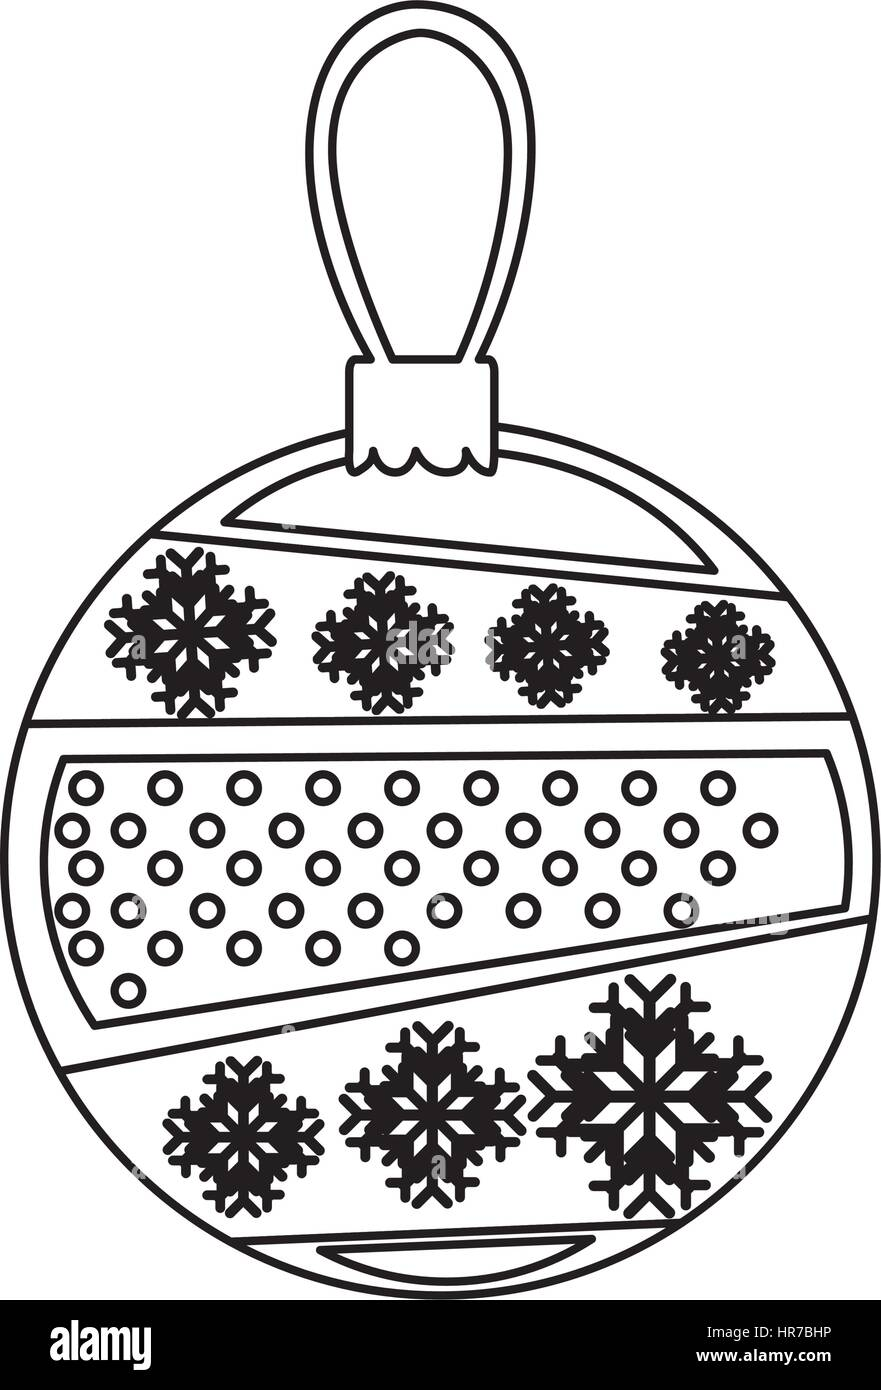 contour christmas balls with shapes inside - Stock Image